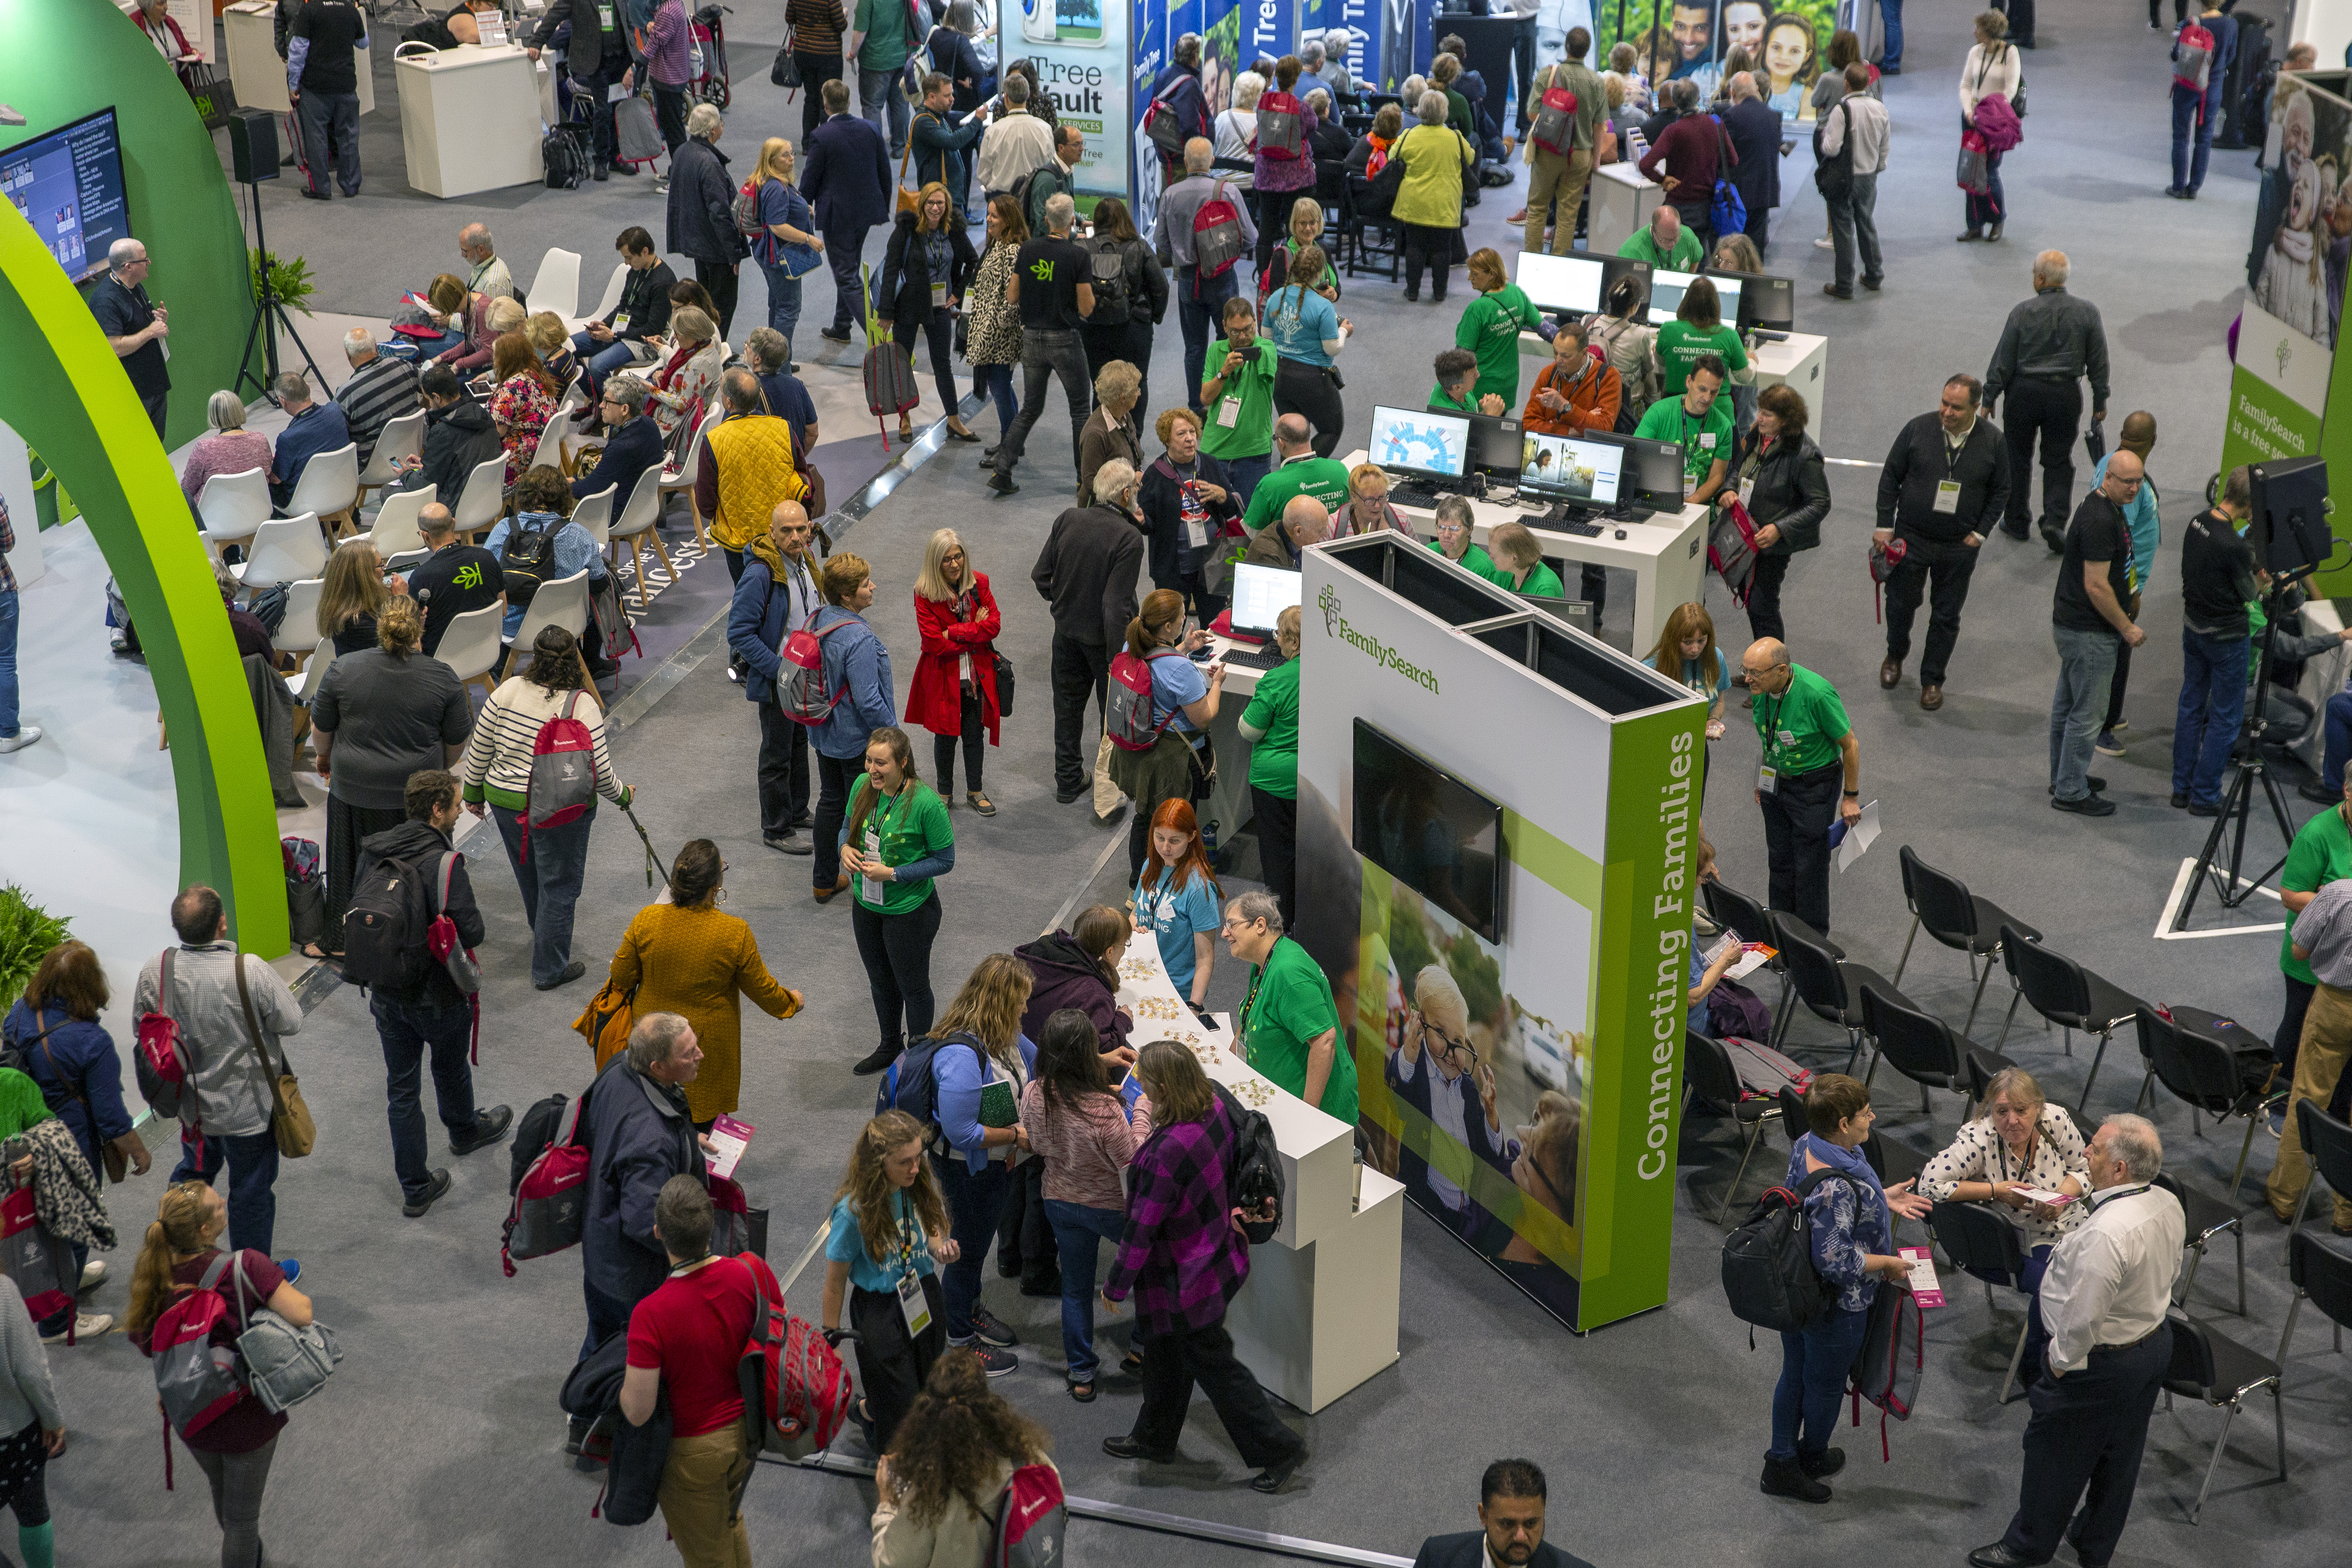 Attendees at RootsTech London 2019 busily explore the many activities and service in the Expo Hall.